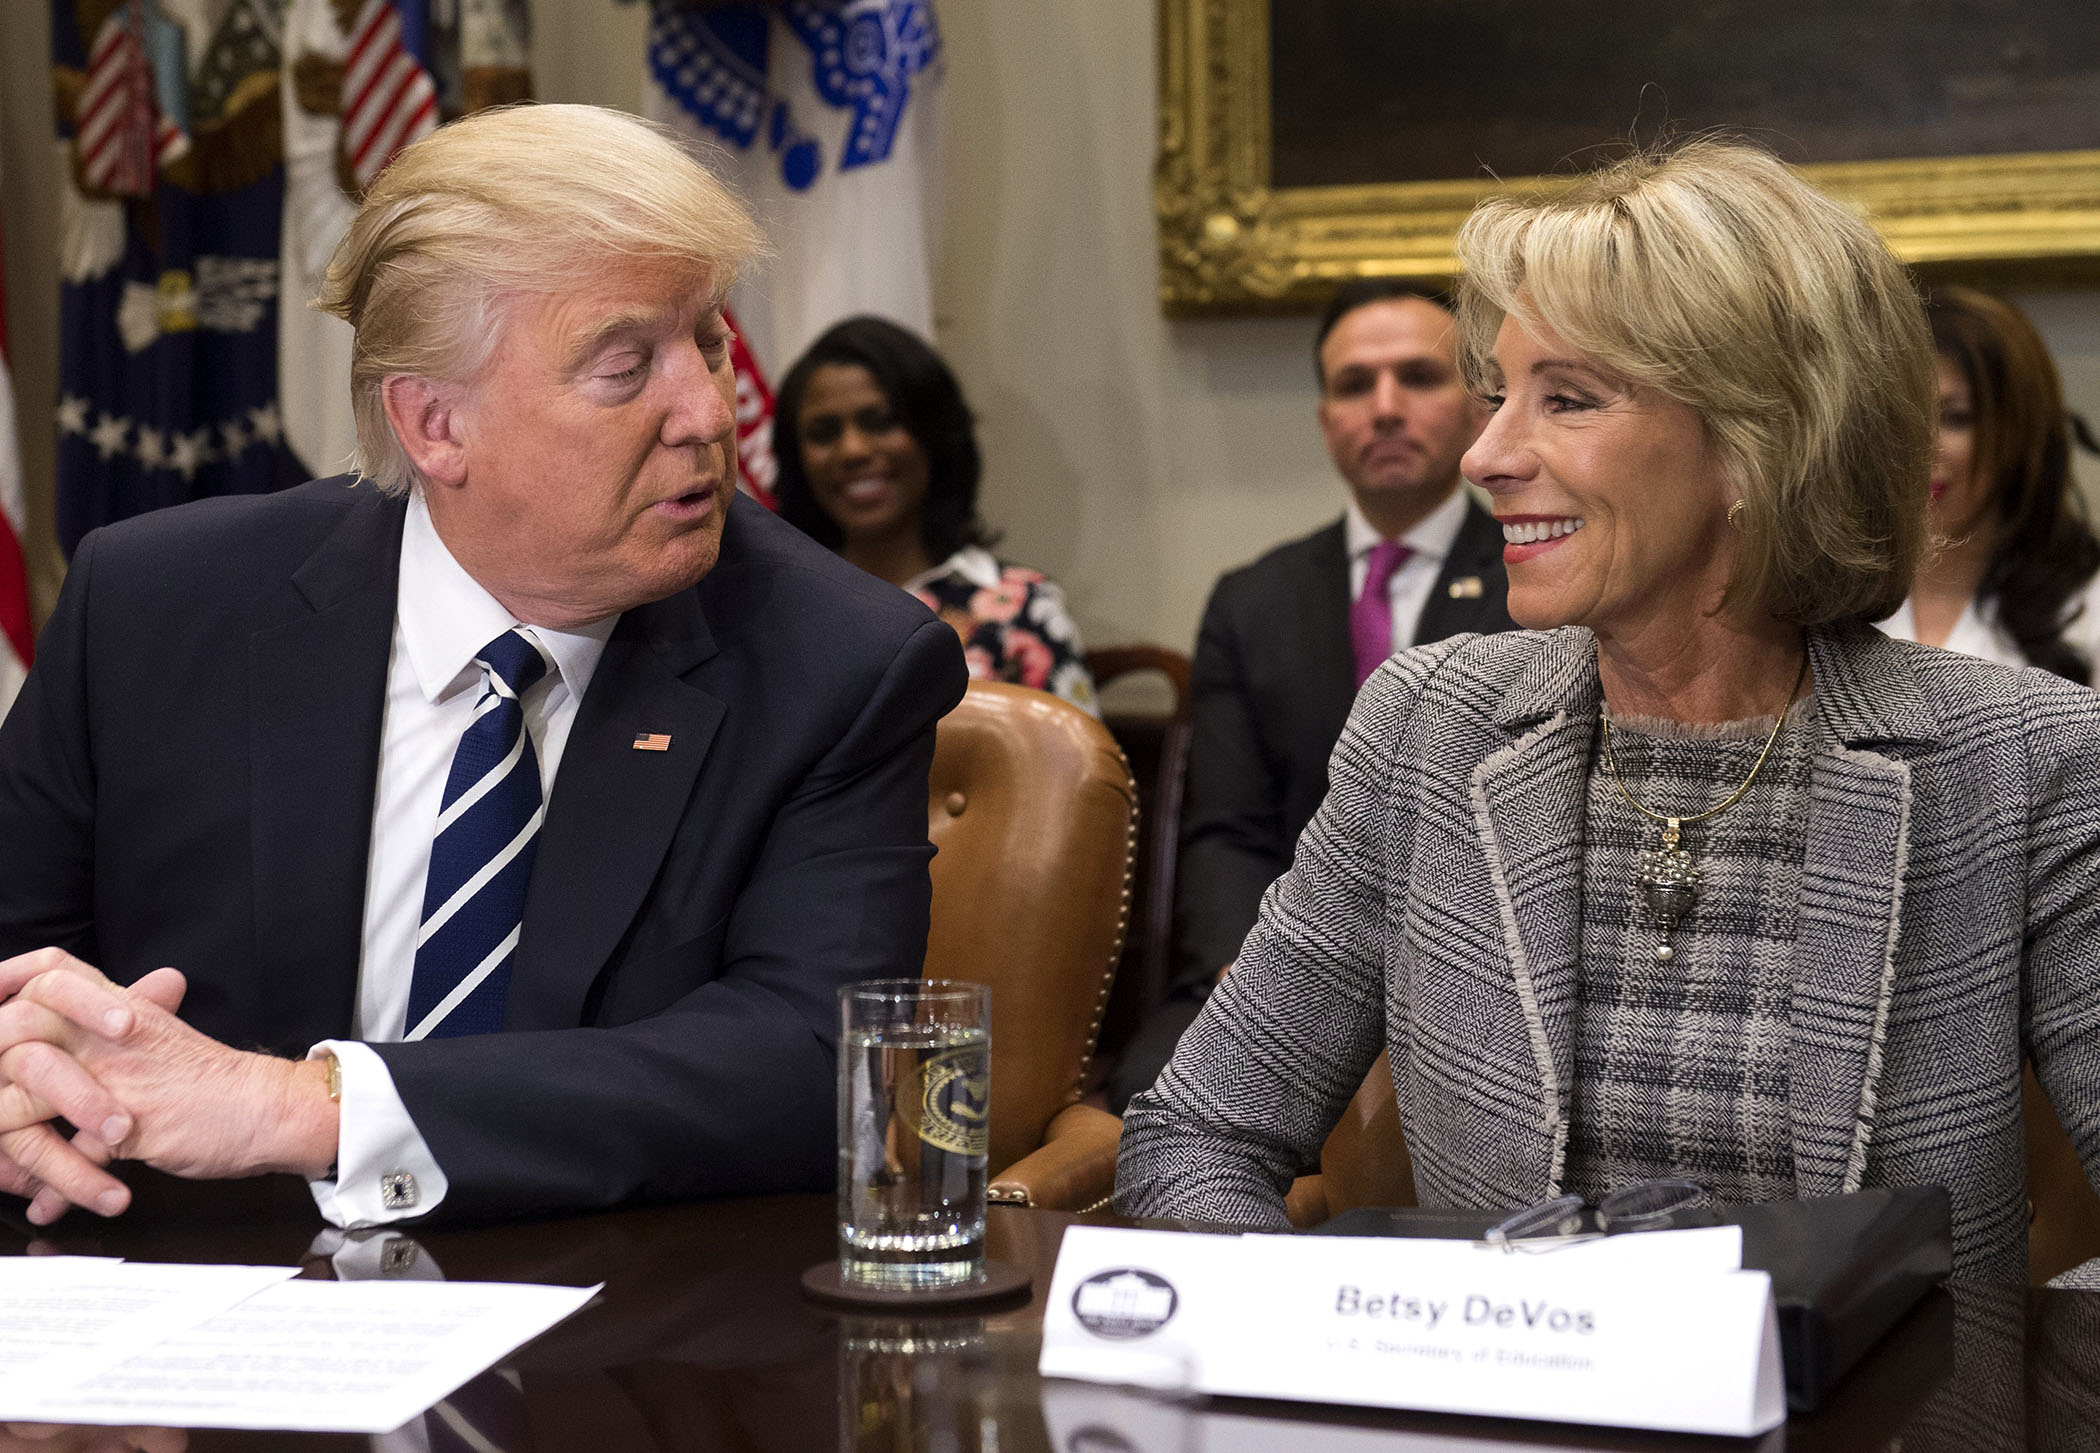 US President Donald Trump and Secretary of Education Betsy DeVos attend a meeting with teachers, school administrators and parents in the Roosevelt Room of the White House in Washington, DC, February 14, 2017.